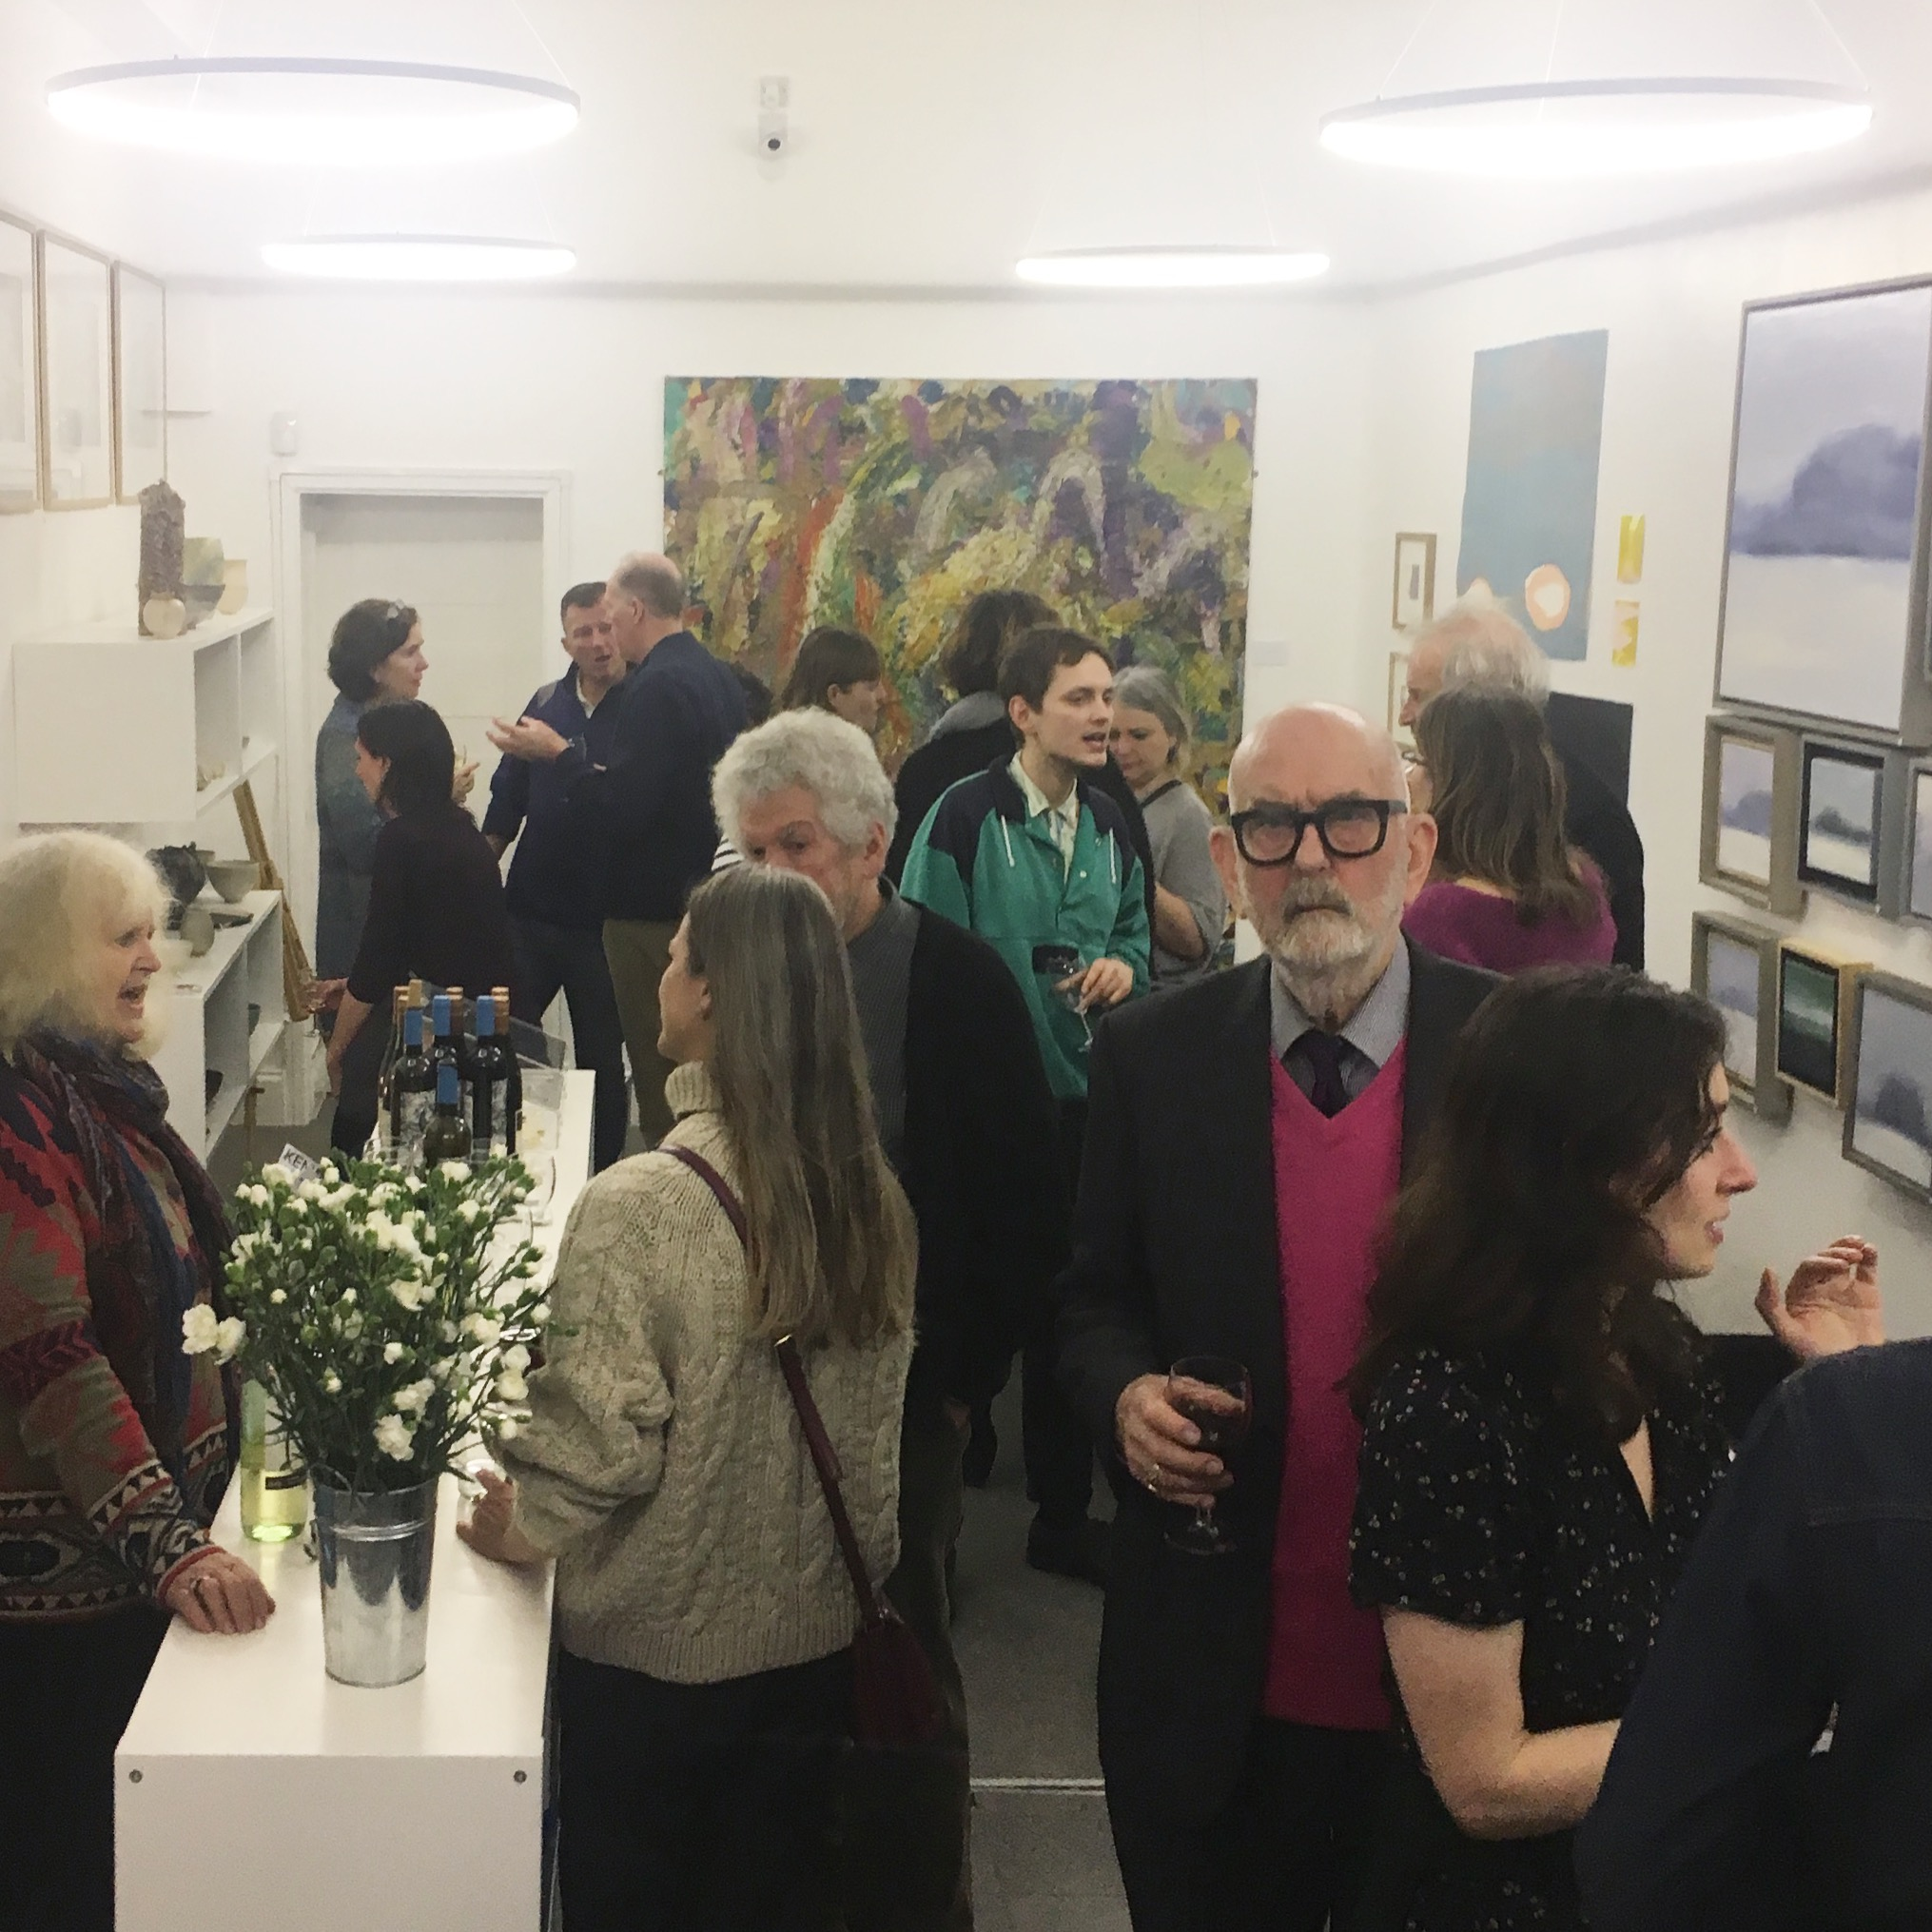 Allan Manham & Colors of The Land Private View, 06/02/19